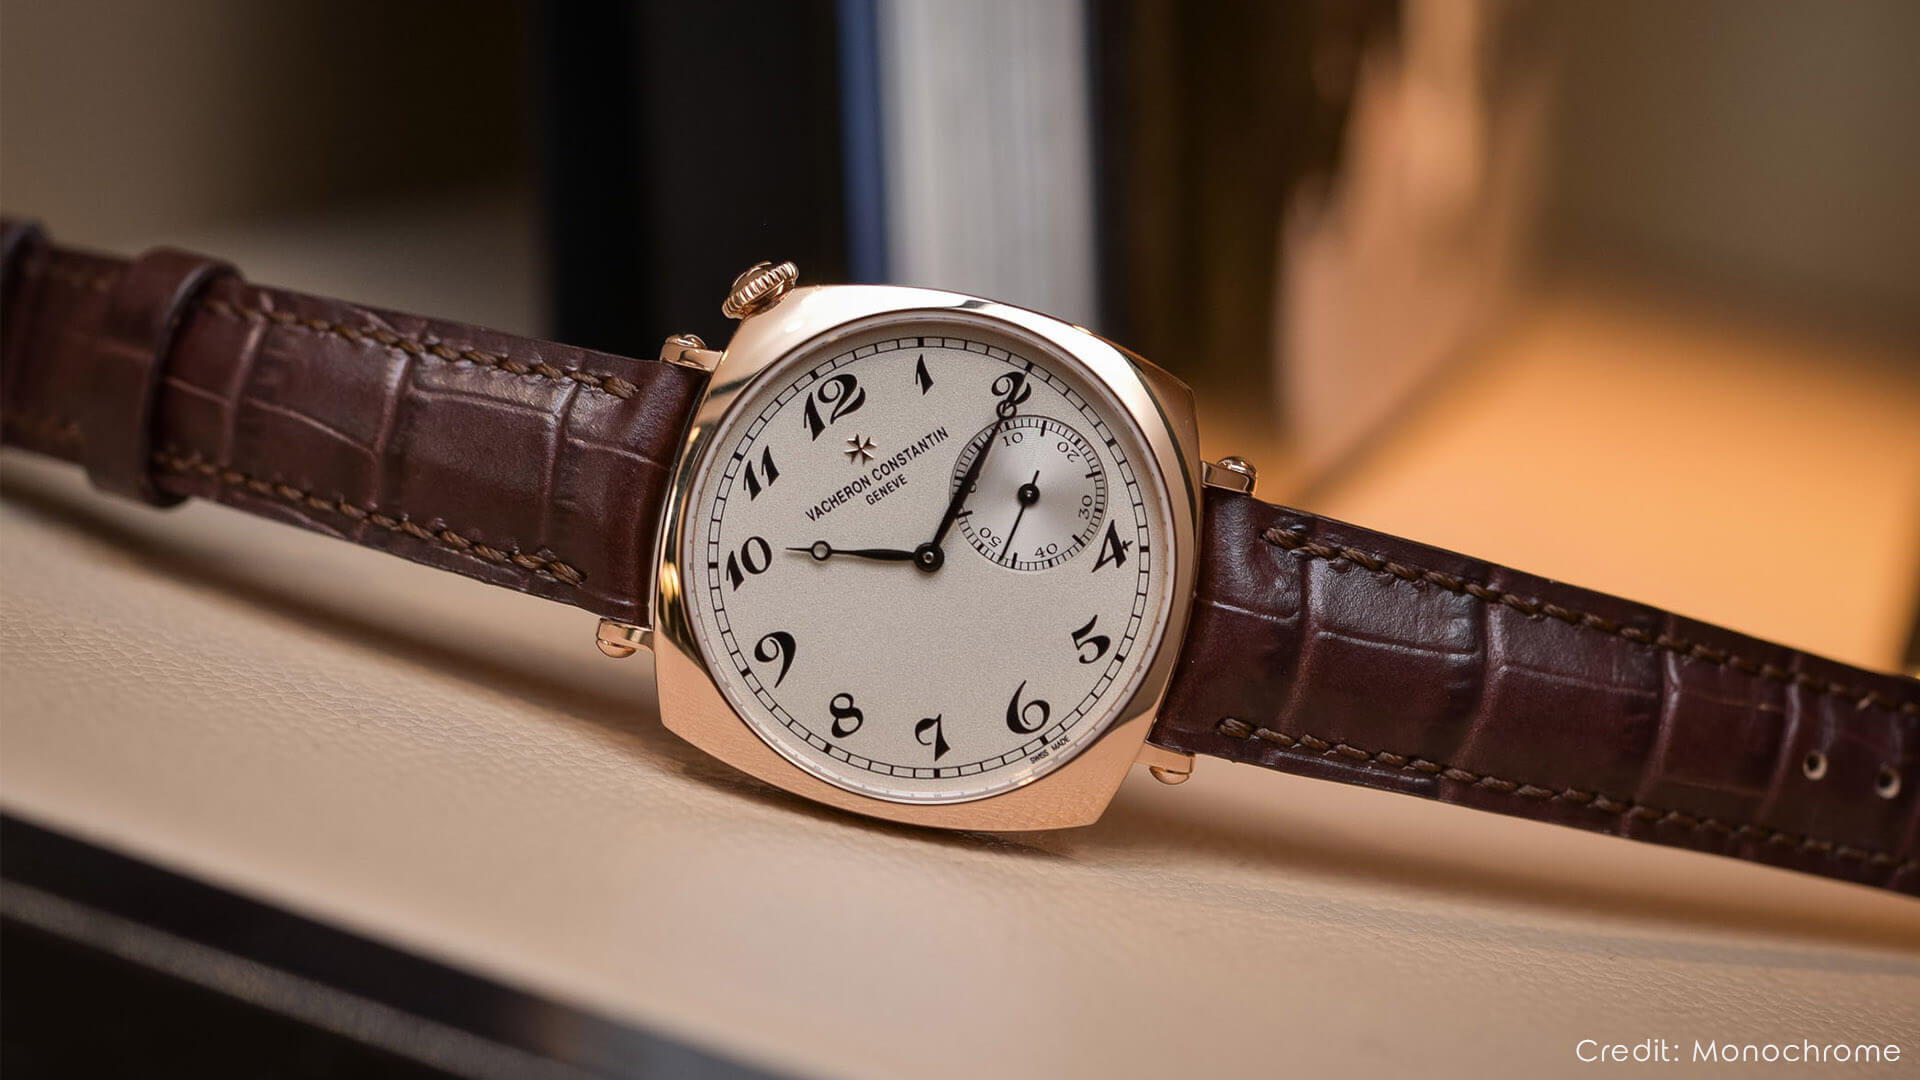 Watch 101: 3 Classic Driver's Watches